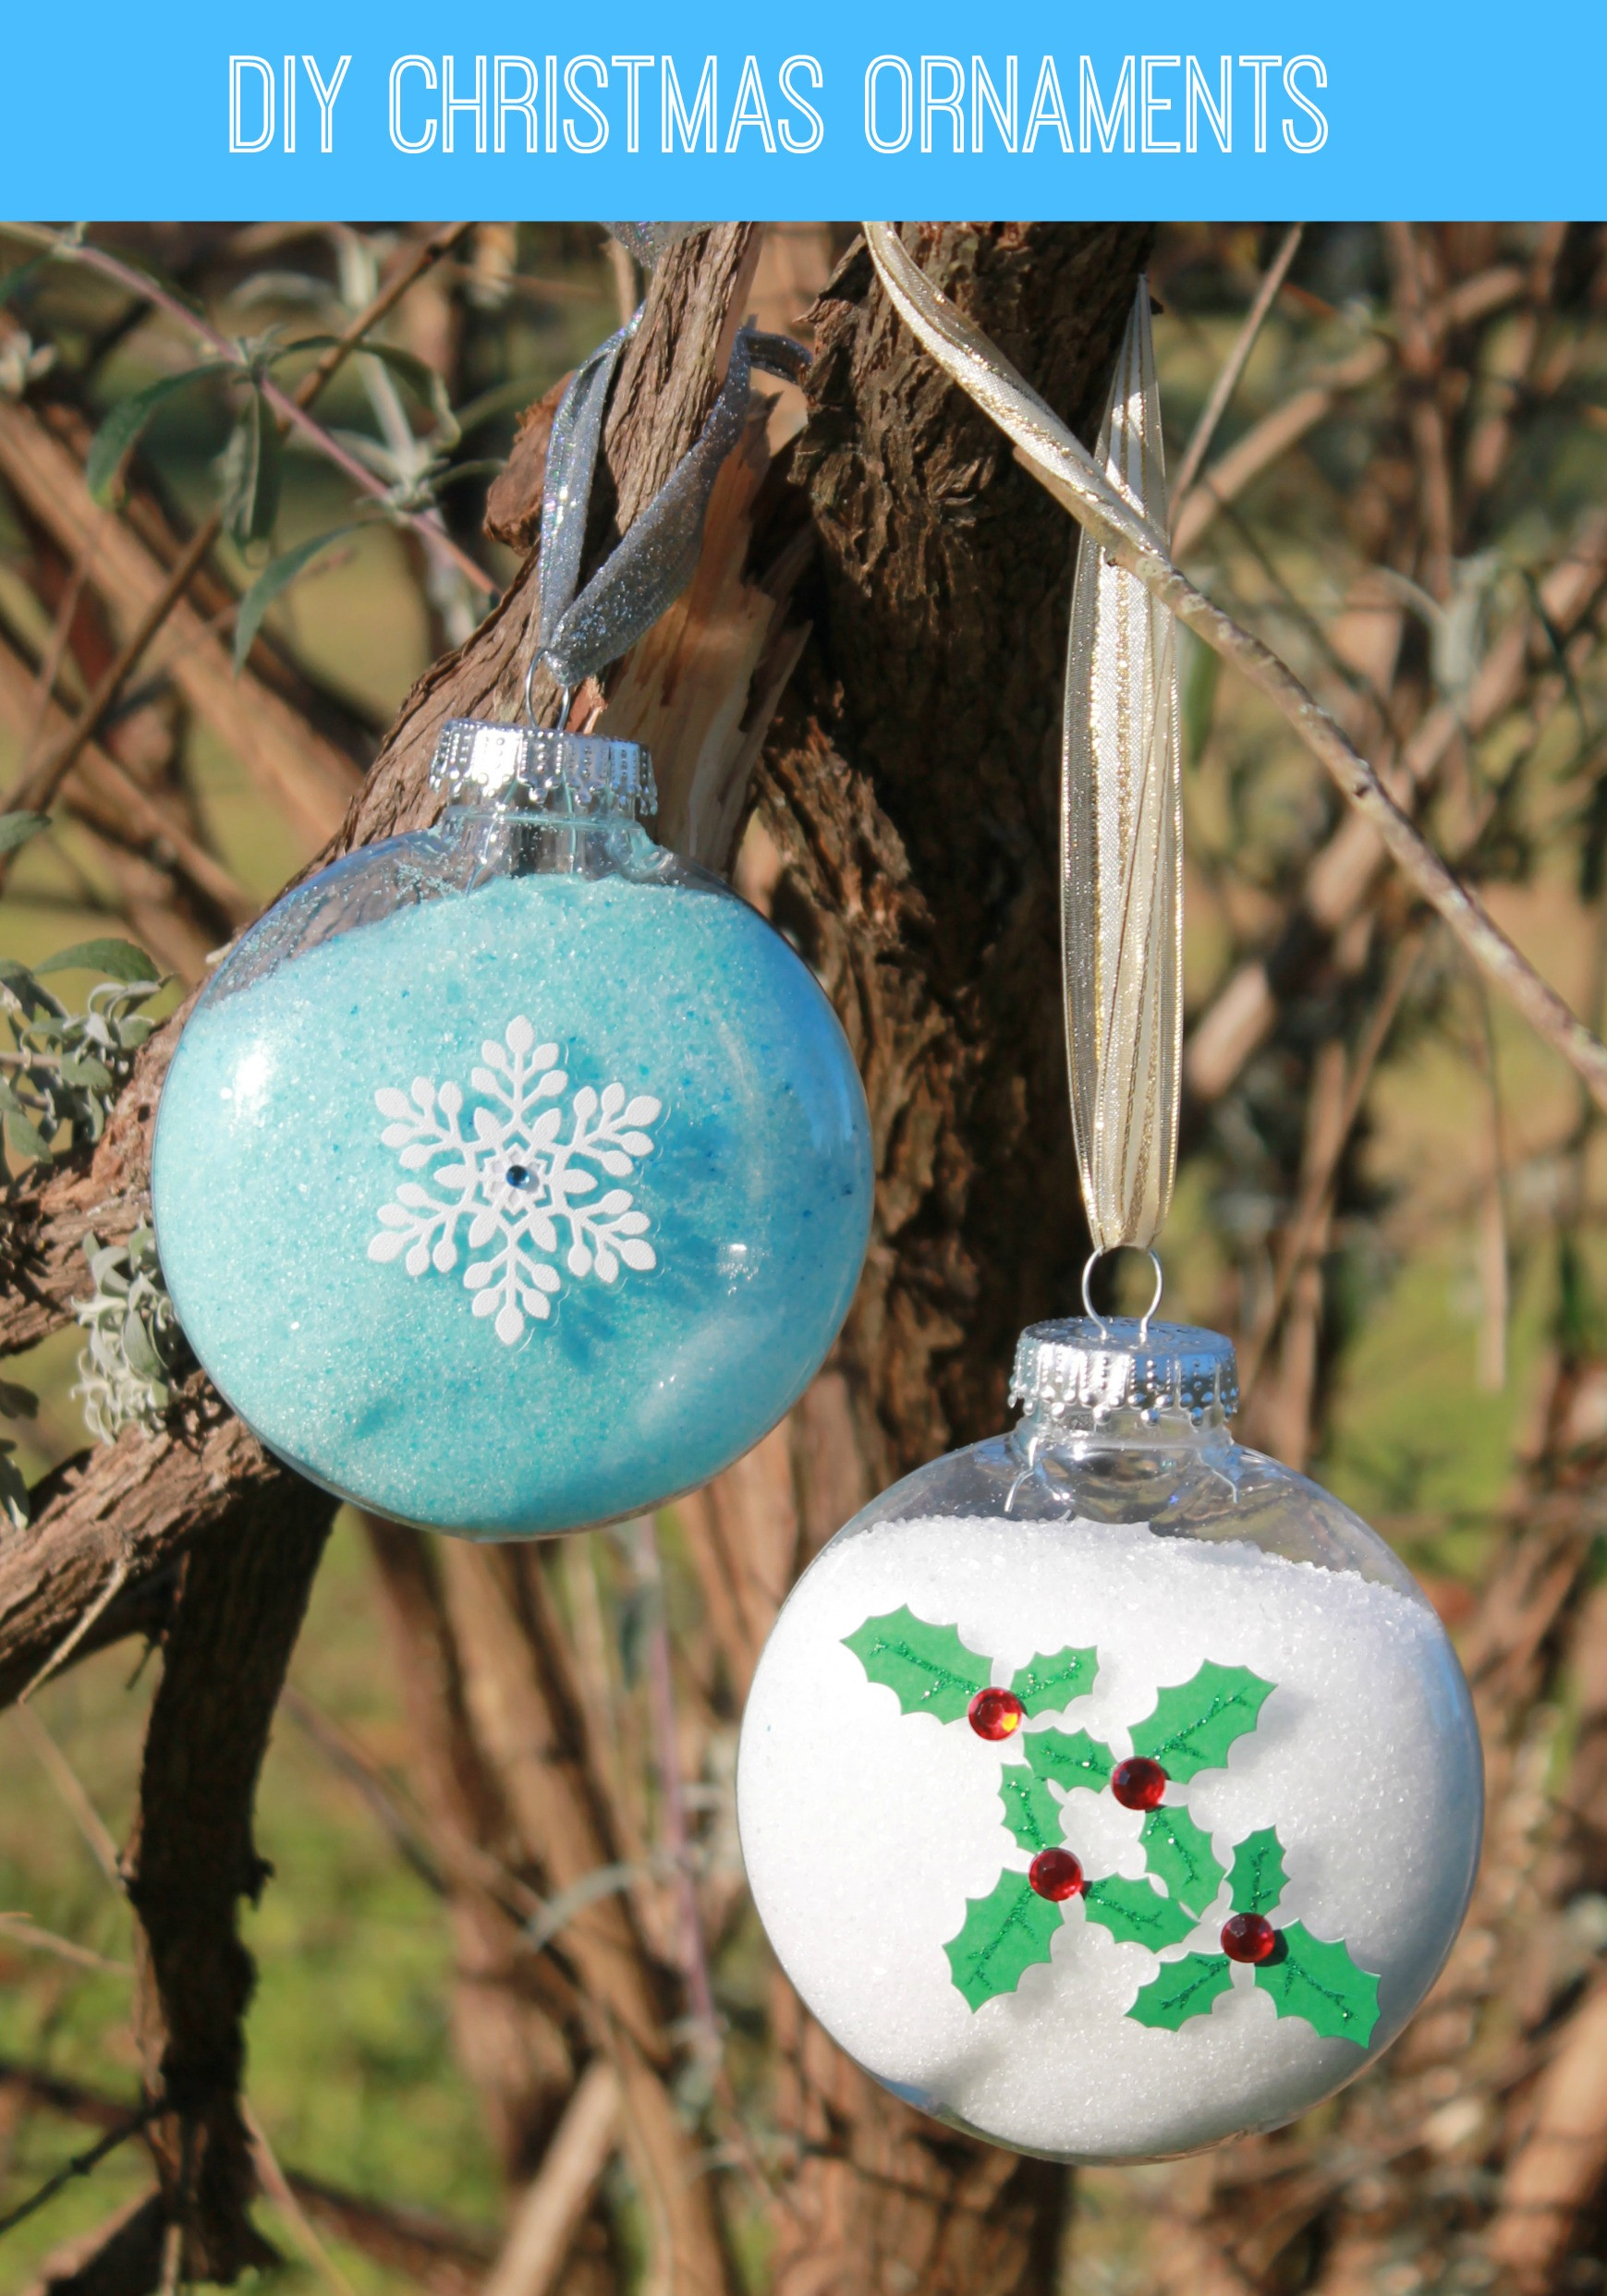 Best ideas about DIY Christmas Ornament . Save or Pin Easy DIY Snowflake Christmas Ornament Now.